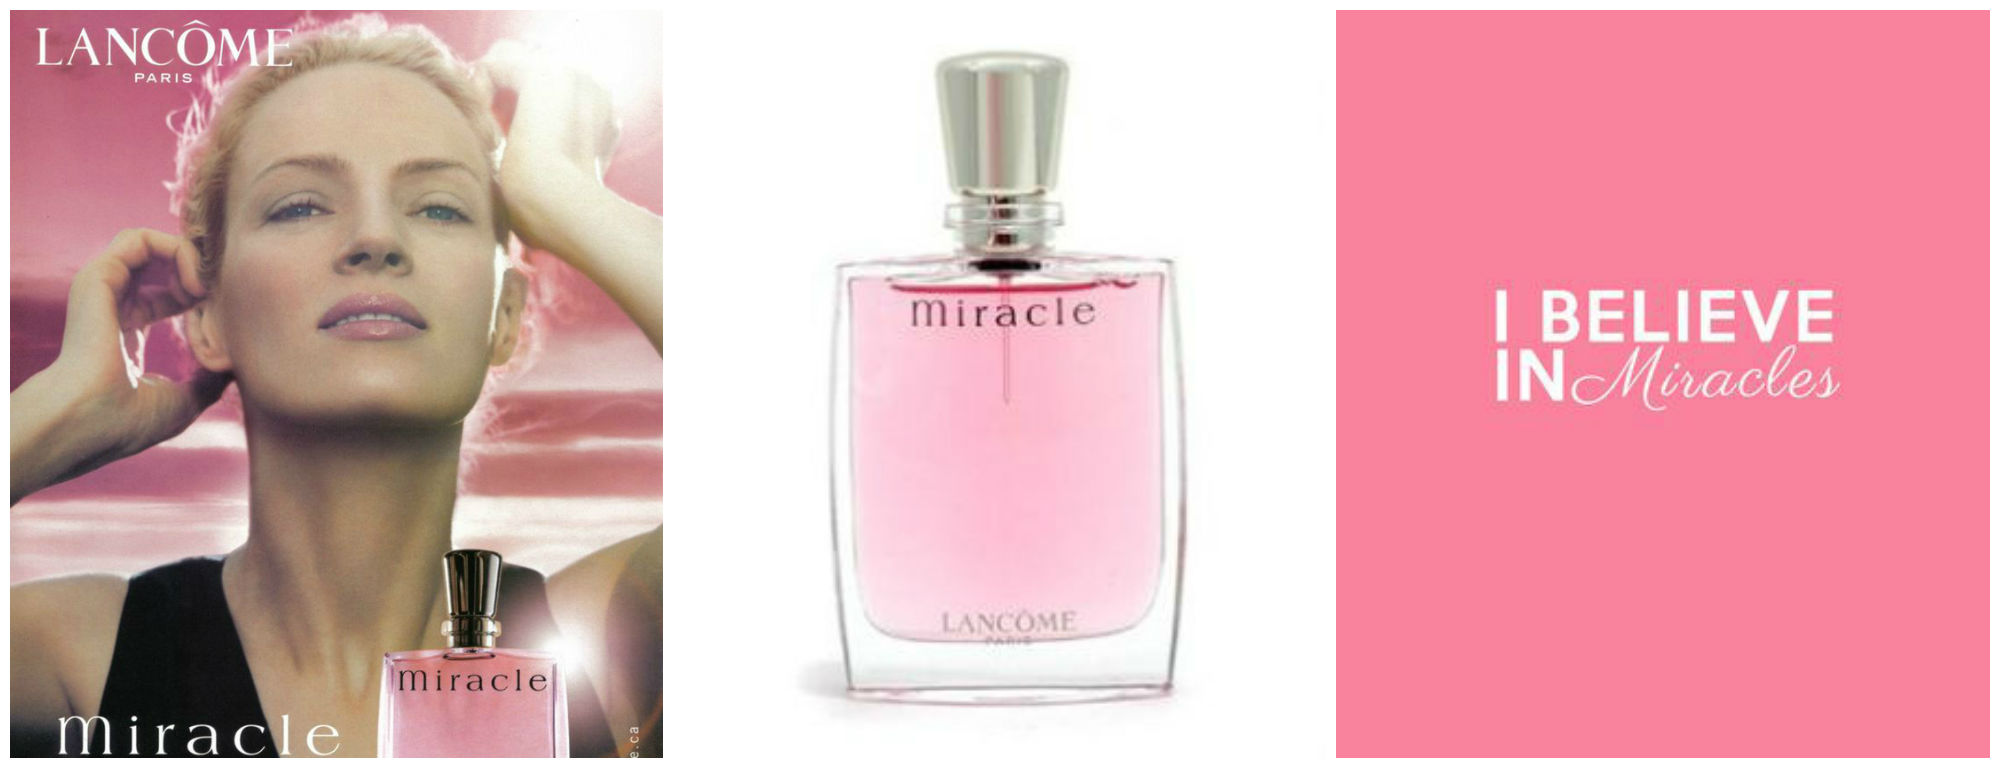 Lancome Miracle Perfume Review